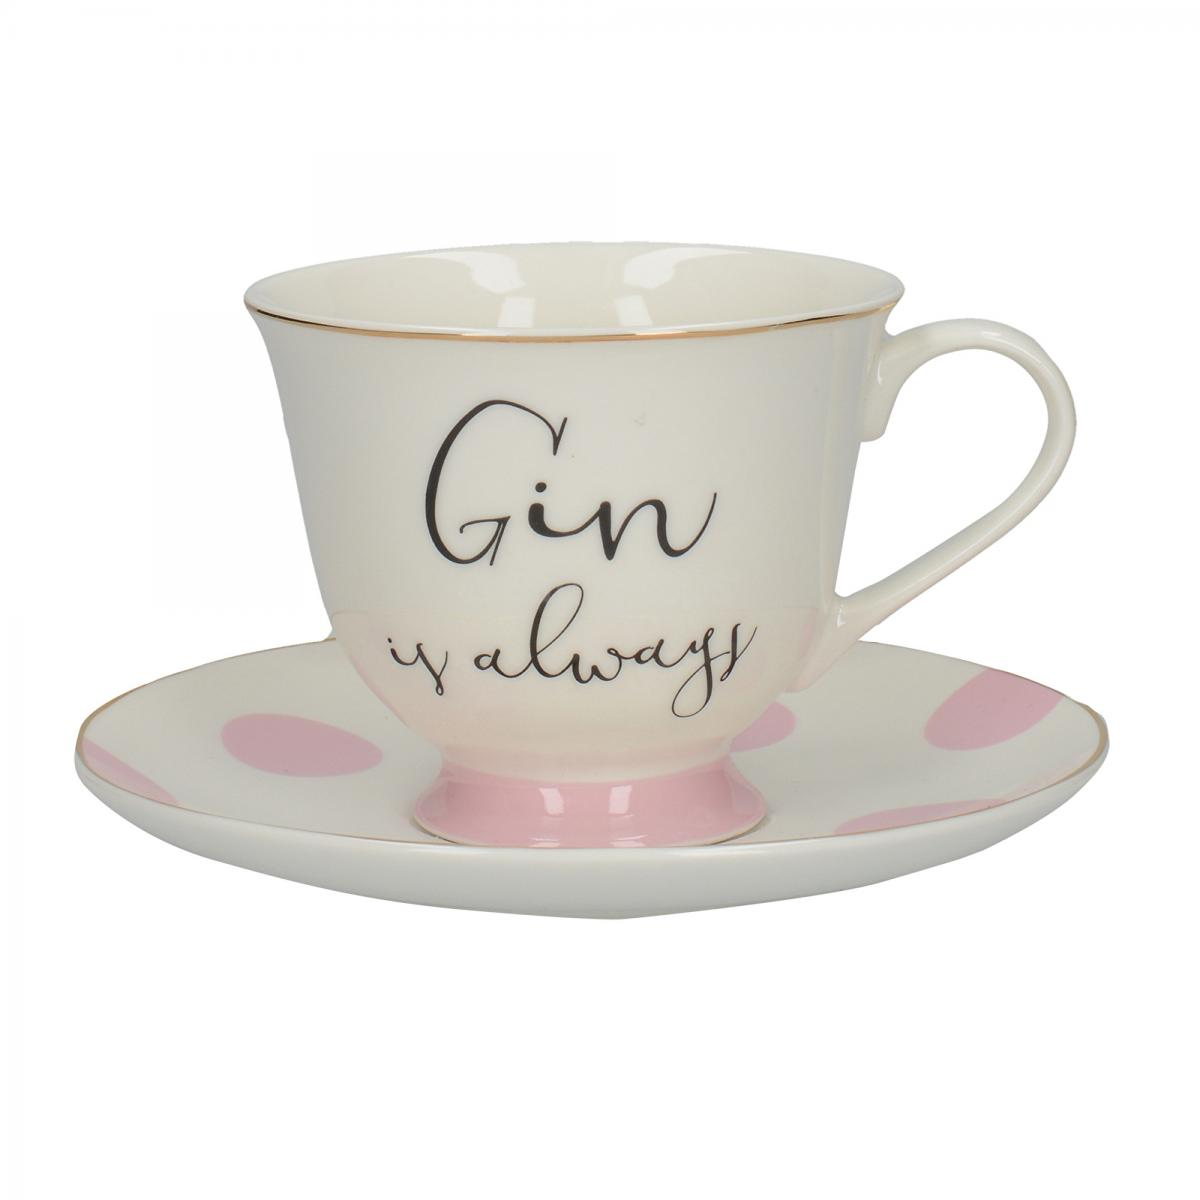 Ava and I Gin & Tonic Teacup & Saucer – Now Only £10.00